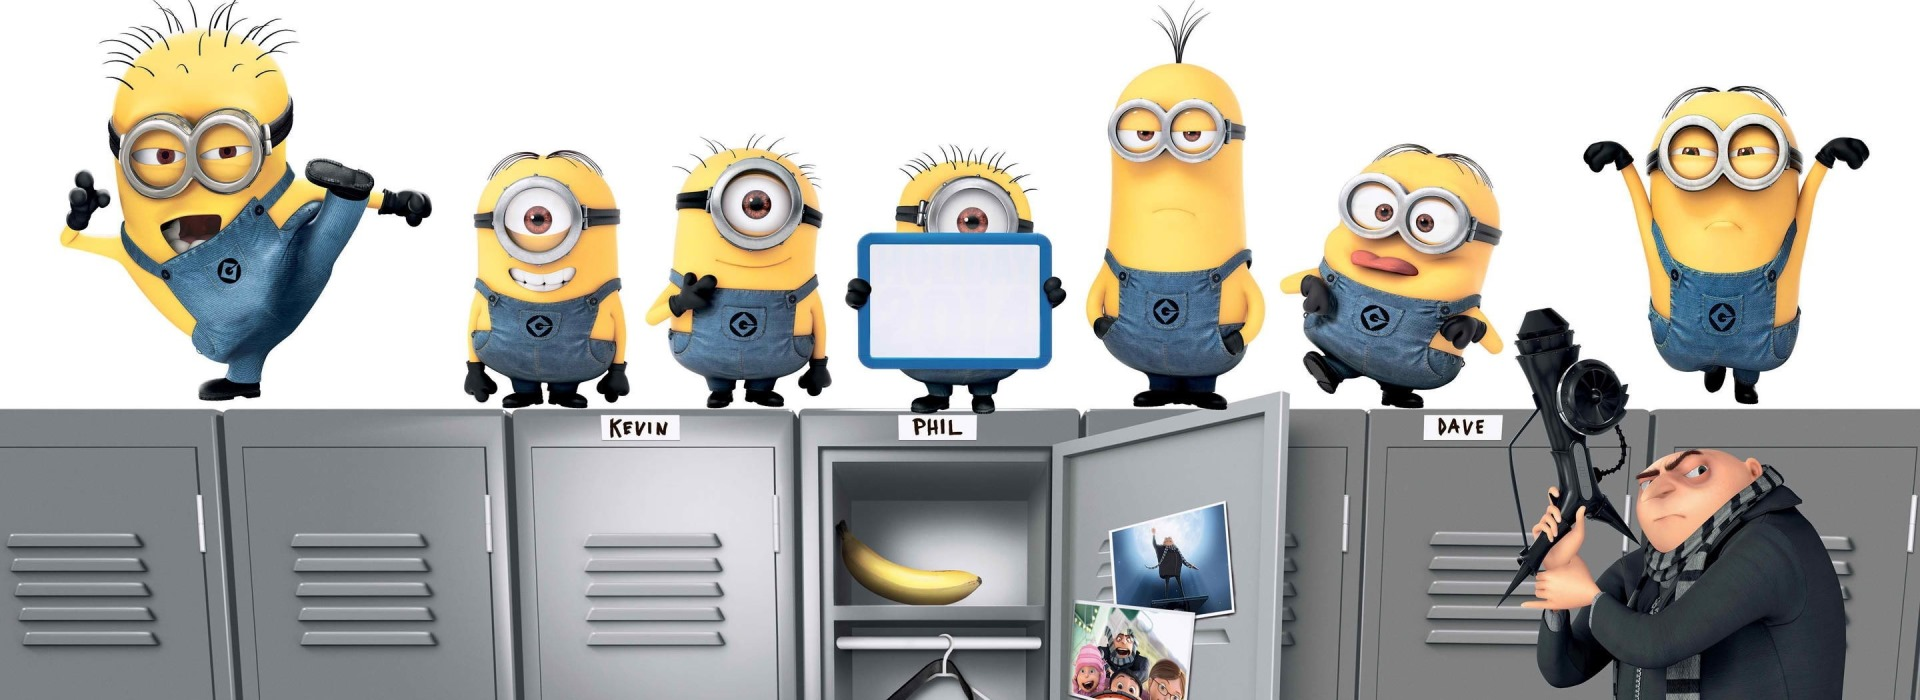 Despicable Me 3 [Blu-Ray] cover